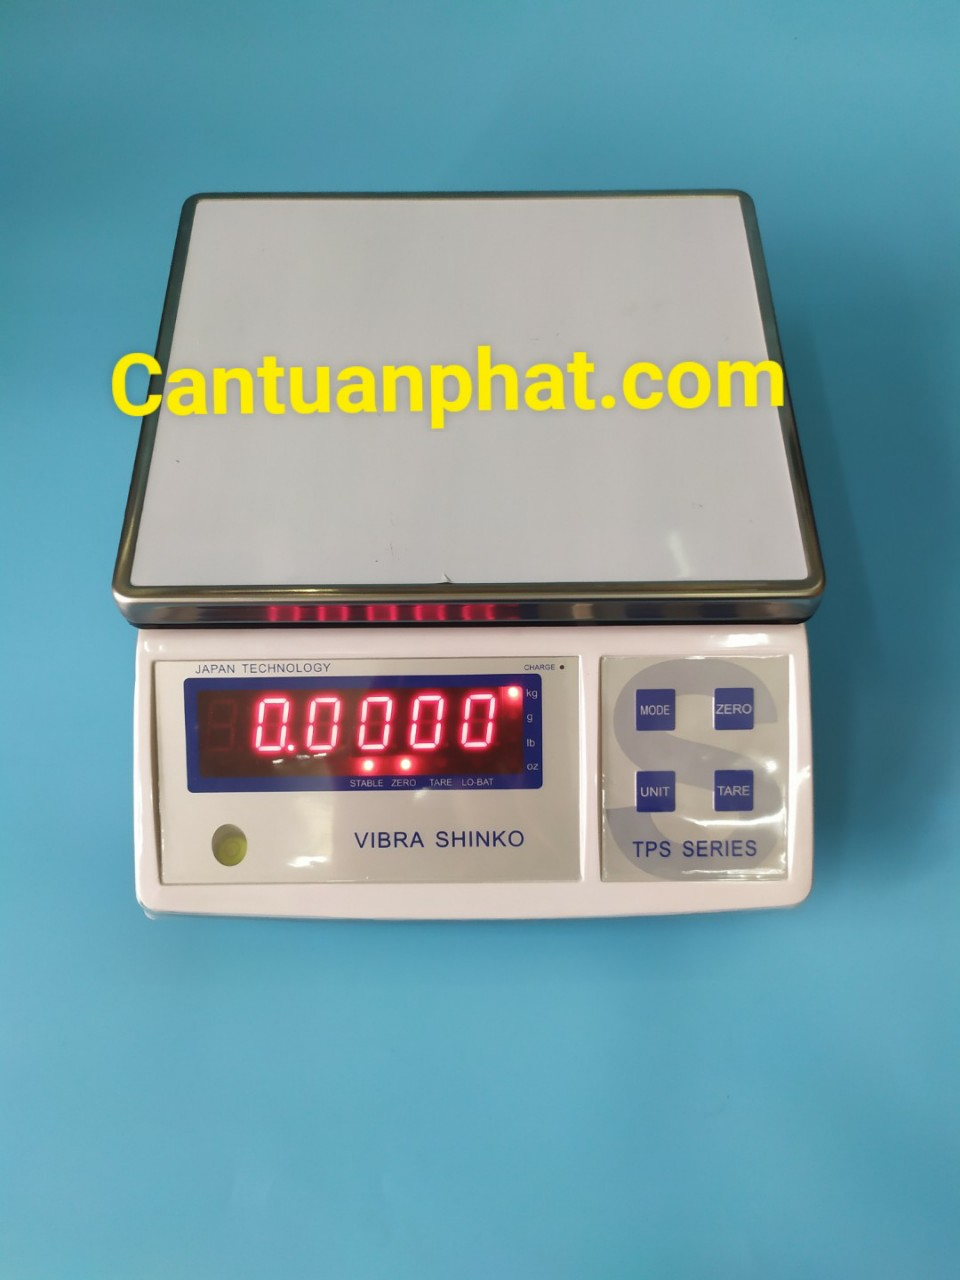 http://cantuanphat.com/pic/Product/1889_637008504180249876.jpg